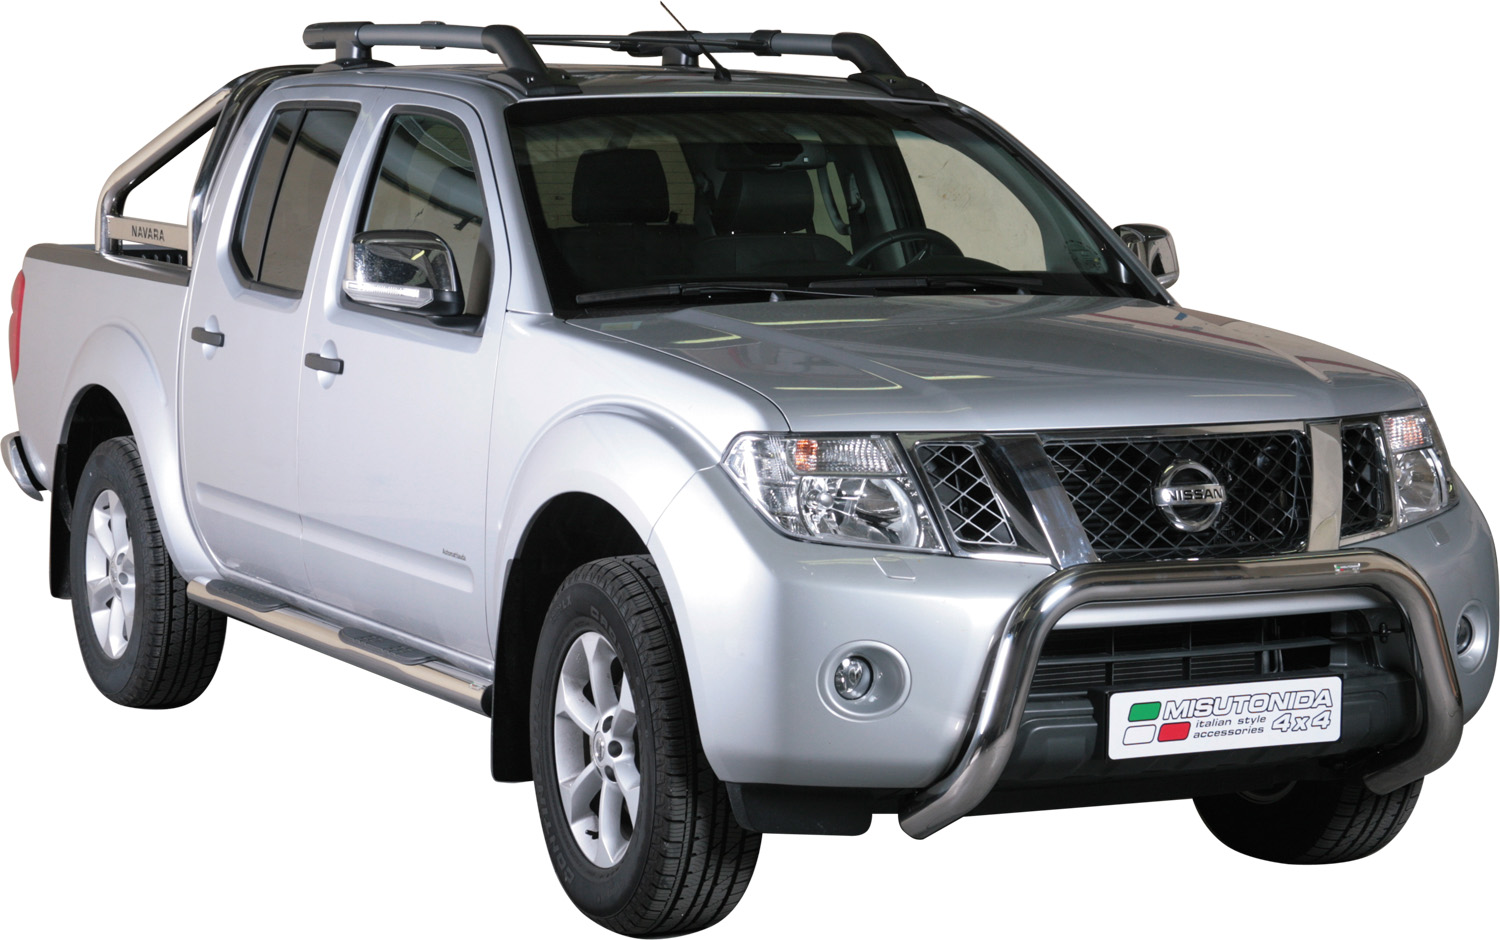 pare buffle inox 76 nissan navara d40 pathfinder 2010 ce v6 super bar. Black Bedroom Furniture Sets. Home Design Ideas